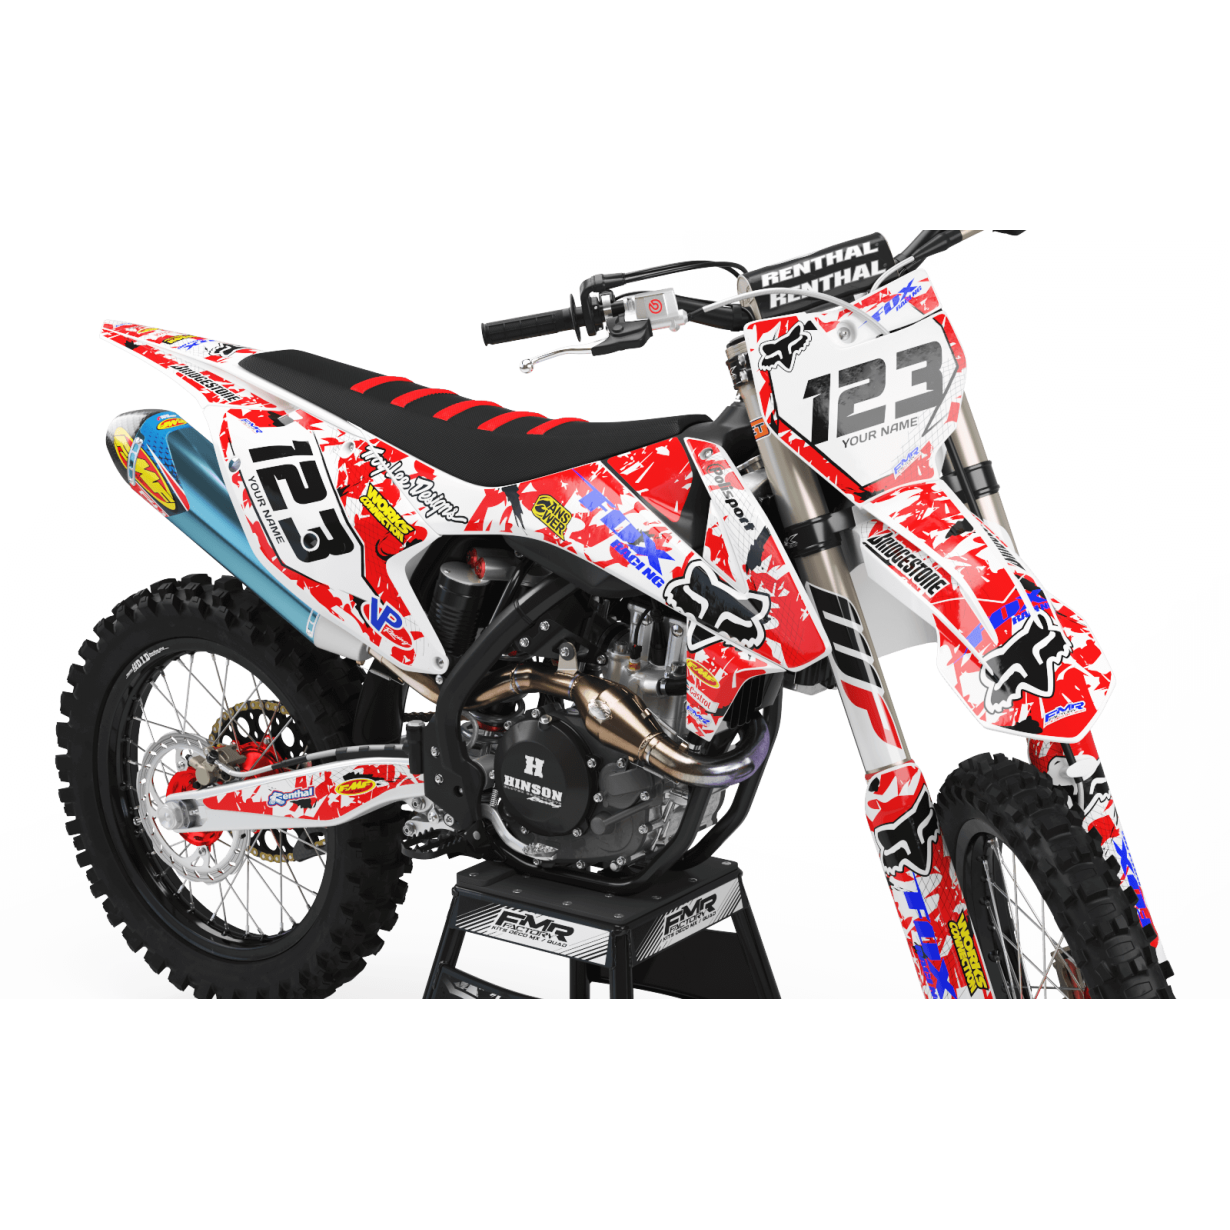 Kit deco perso ktm a9a 2